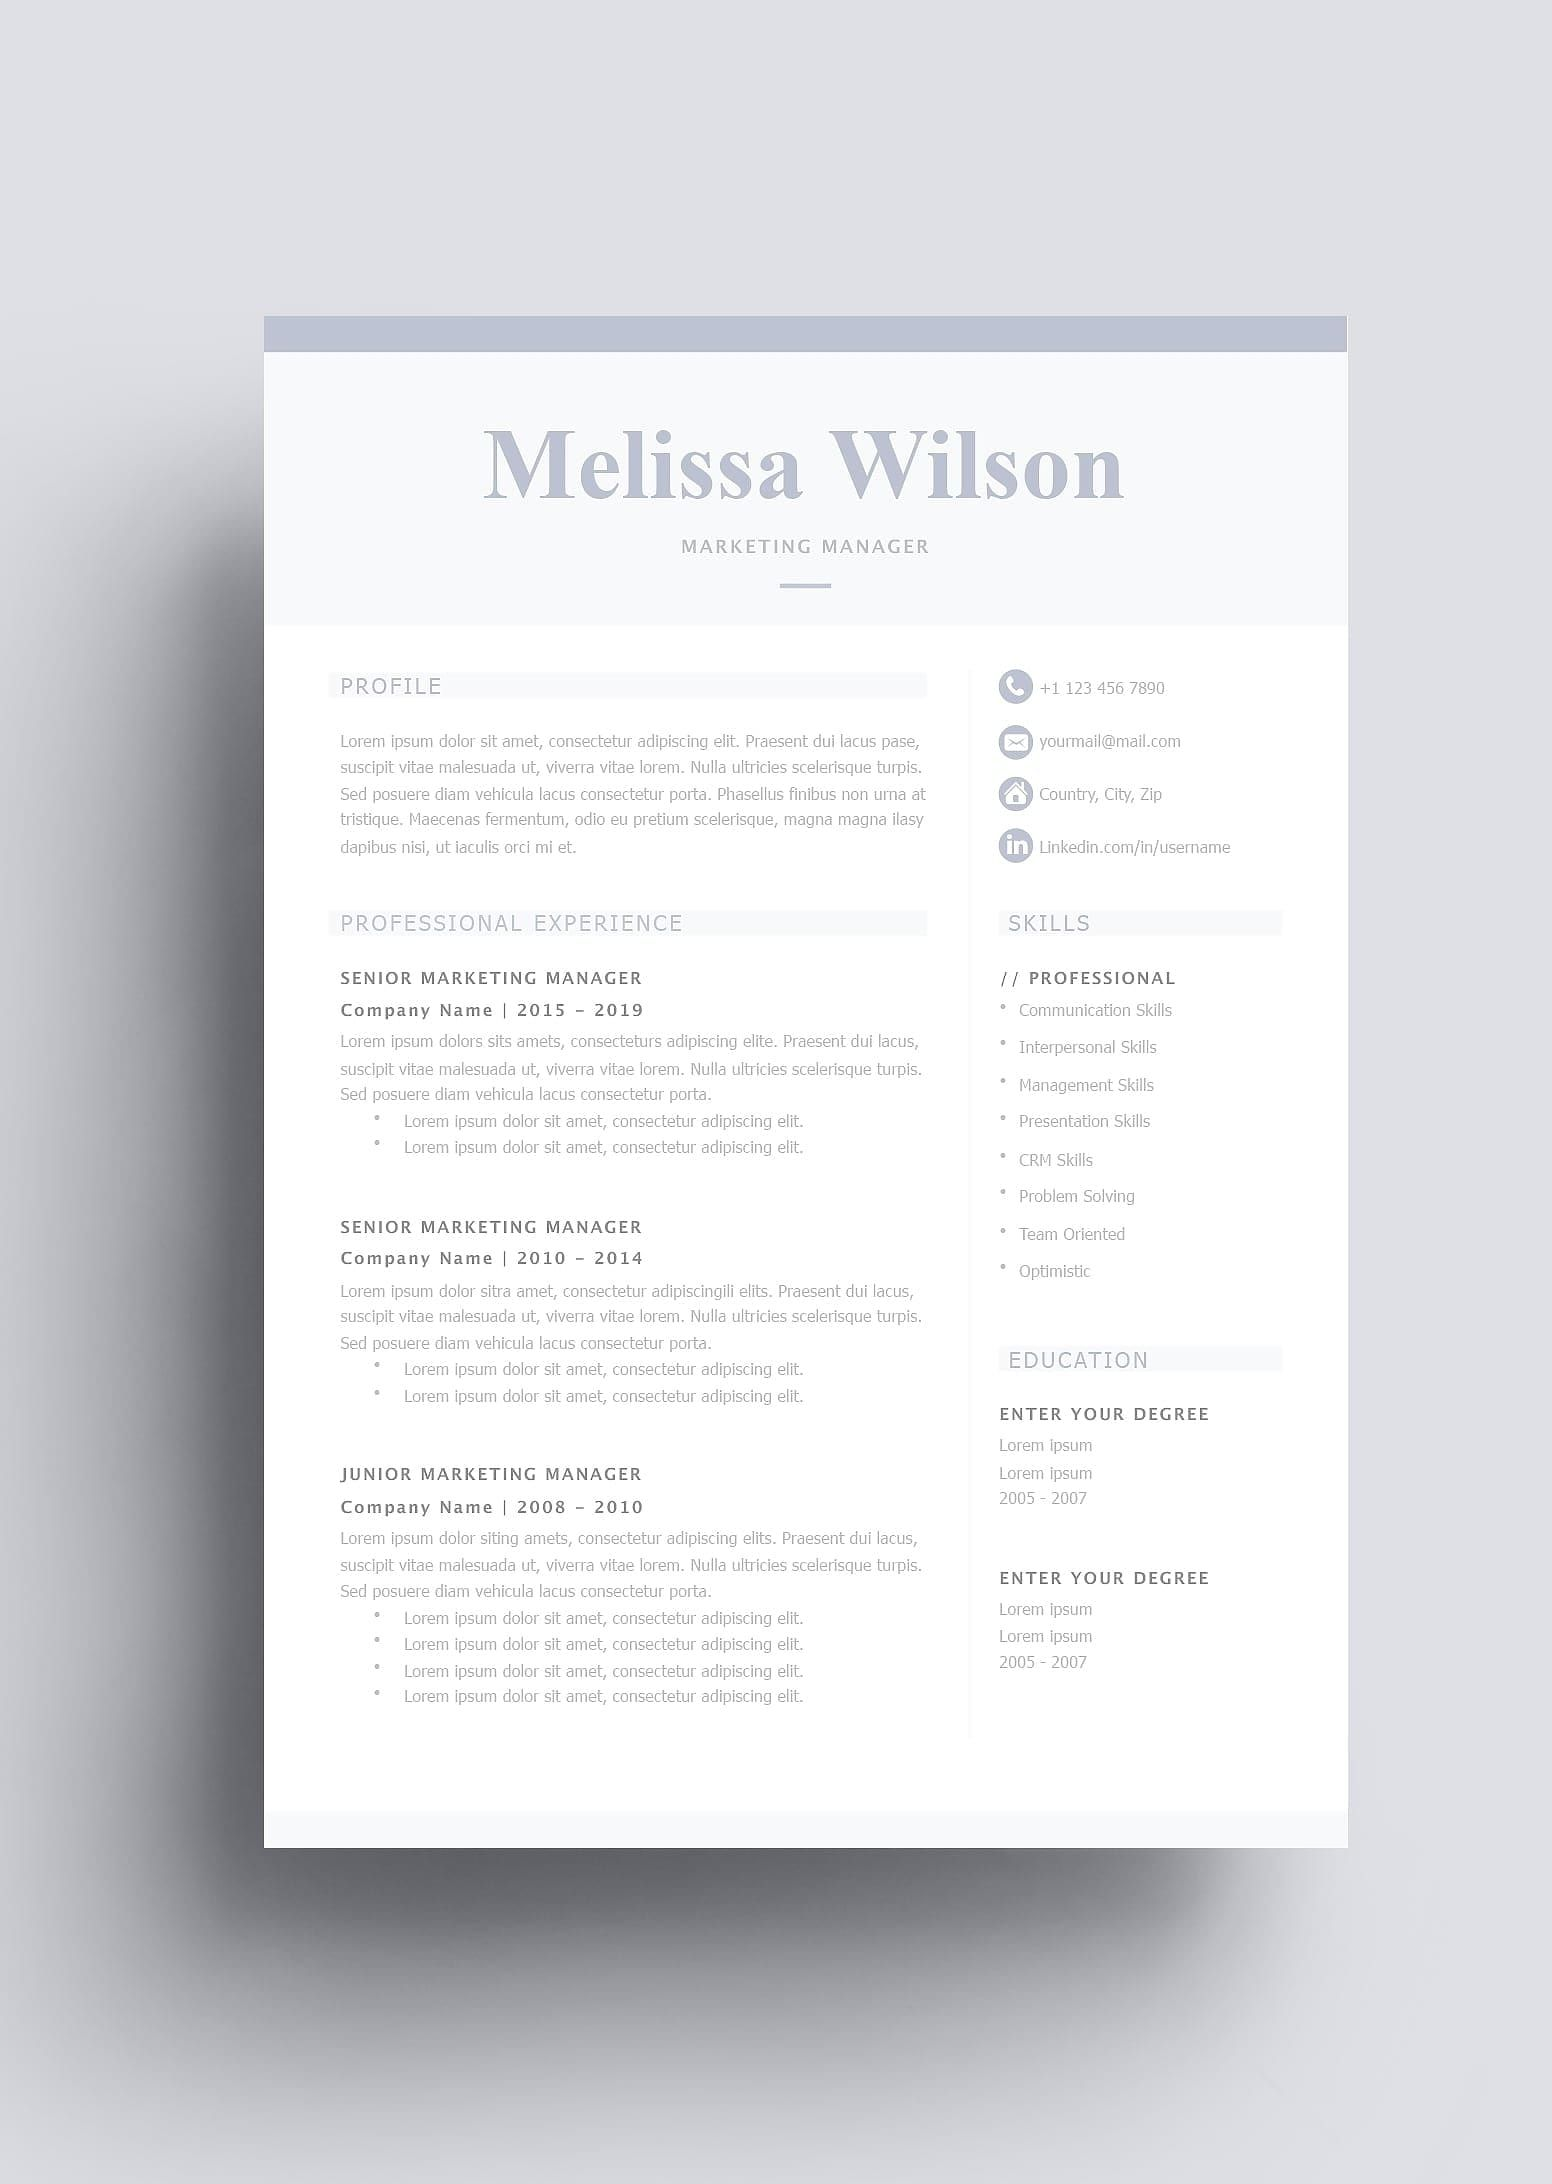 Top 9 Resume Fonts to Level Up Your Resume in 2020